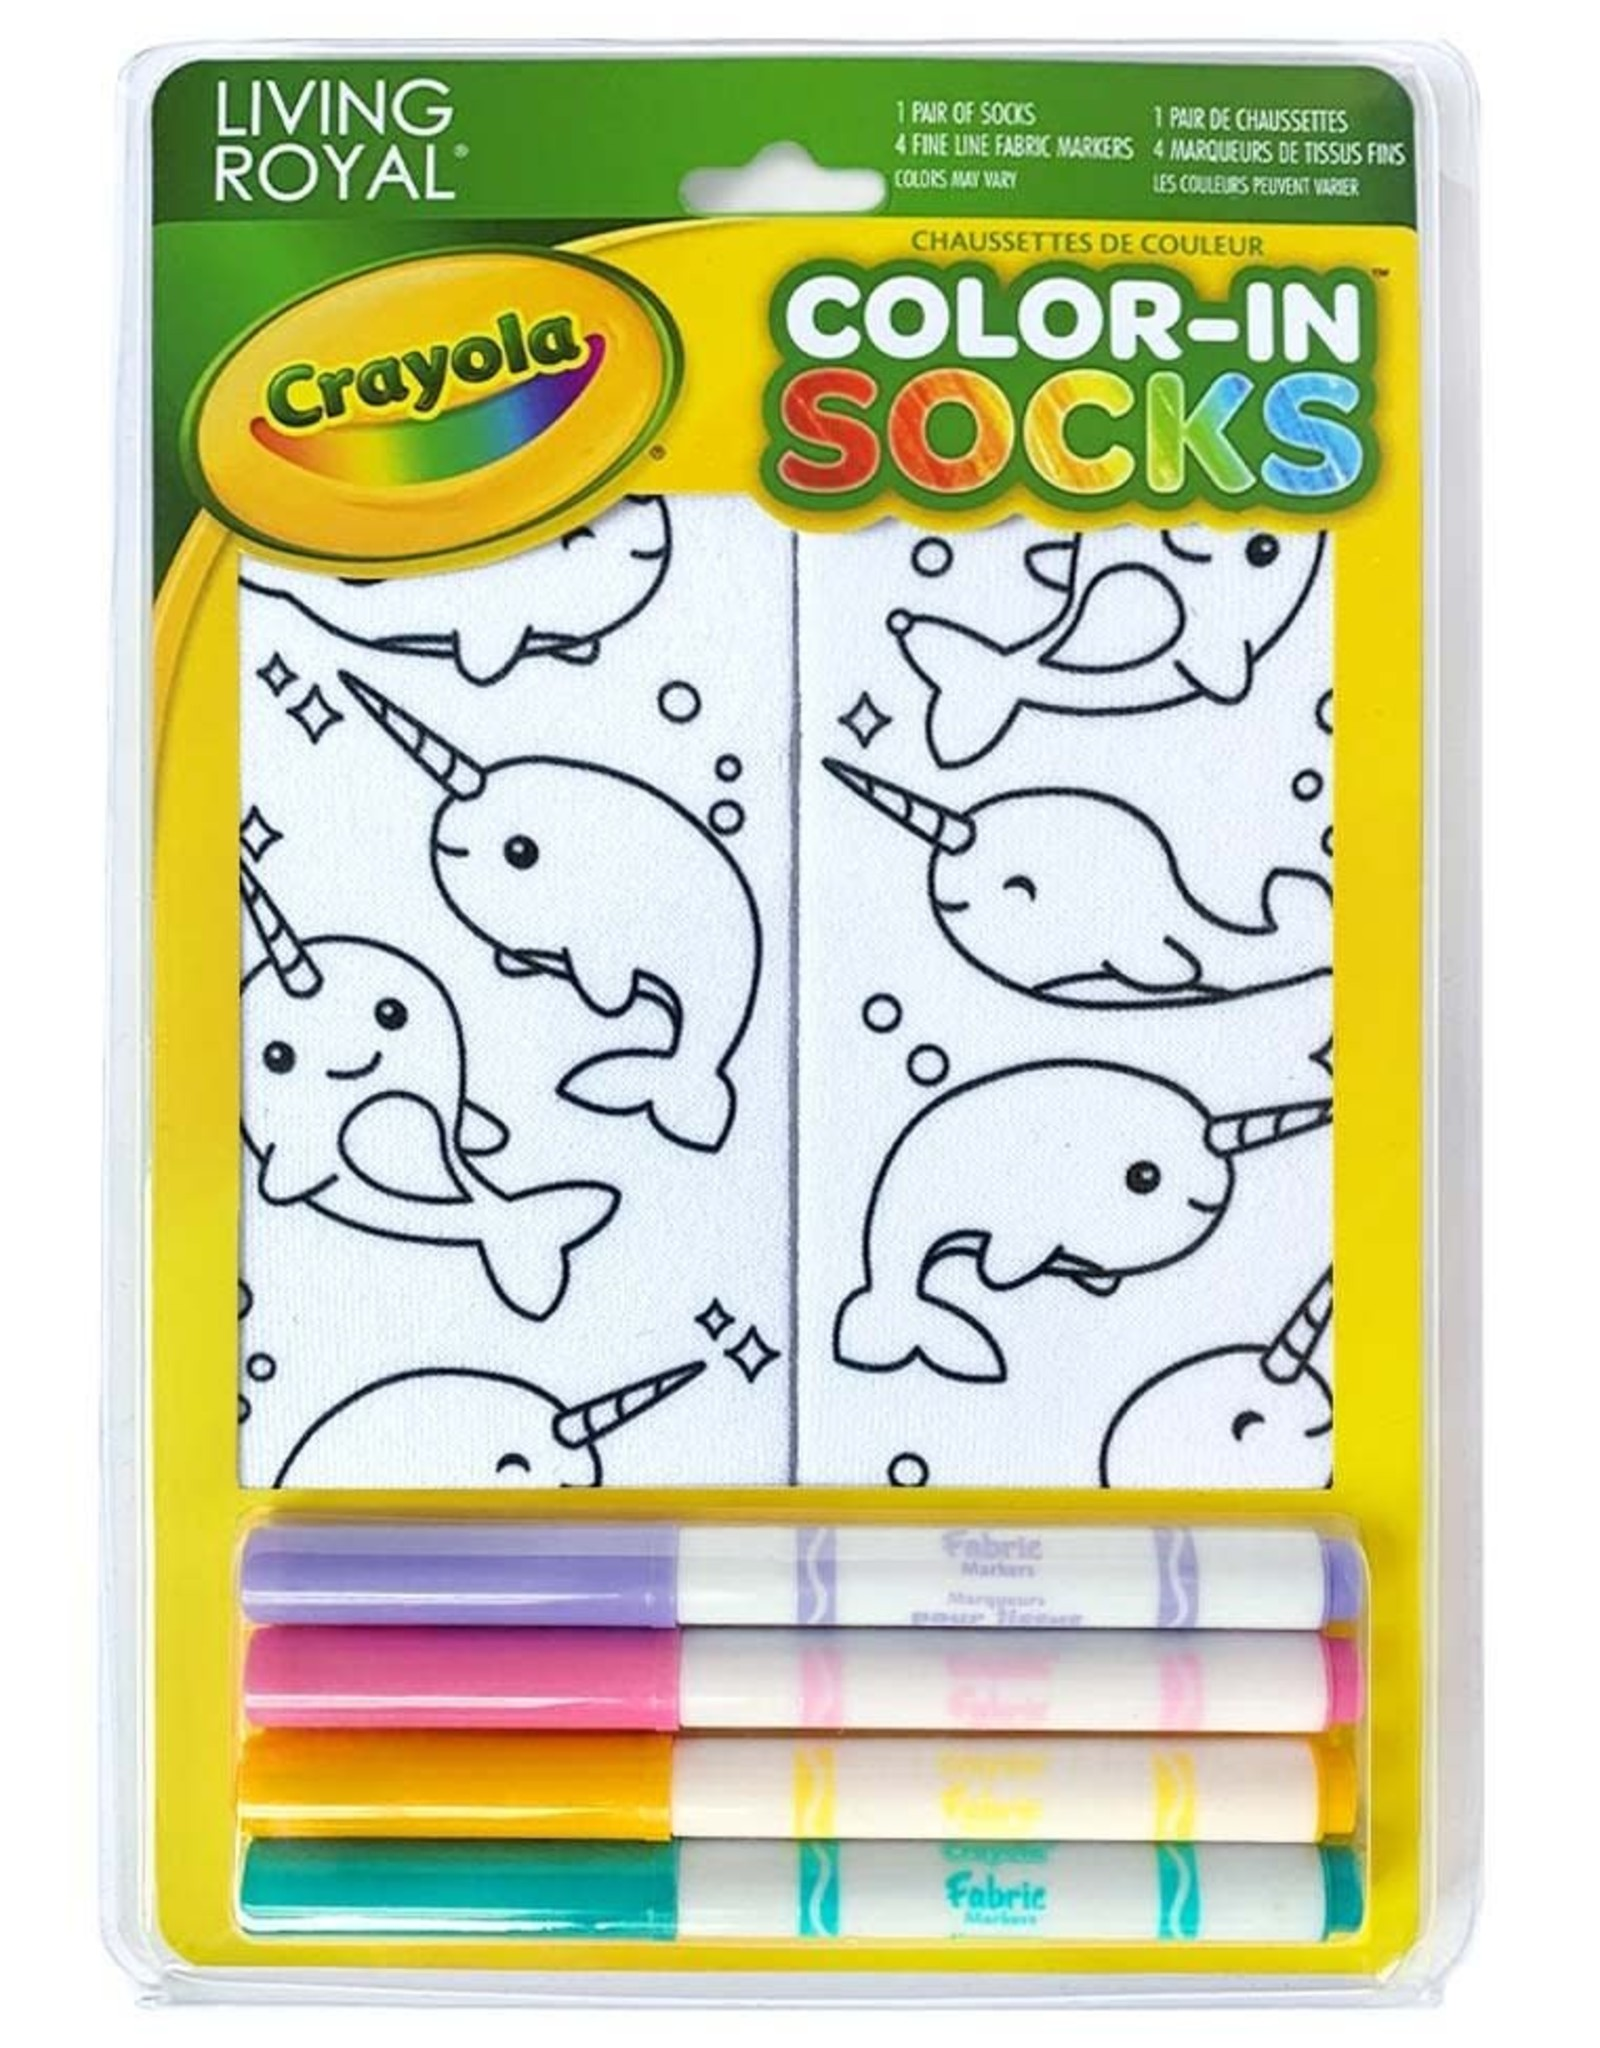 Crayola Color-In Socks: Narwhal Fun